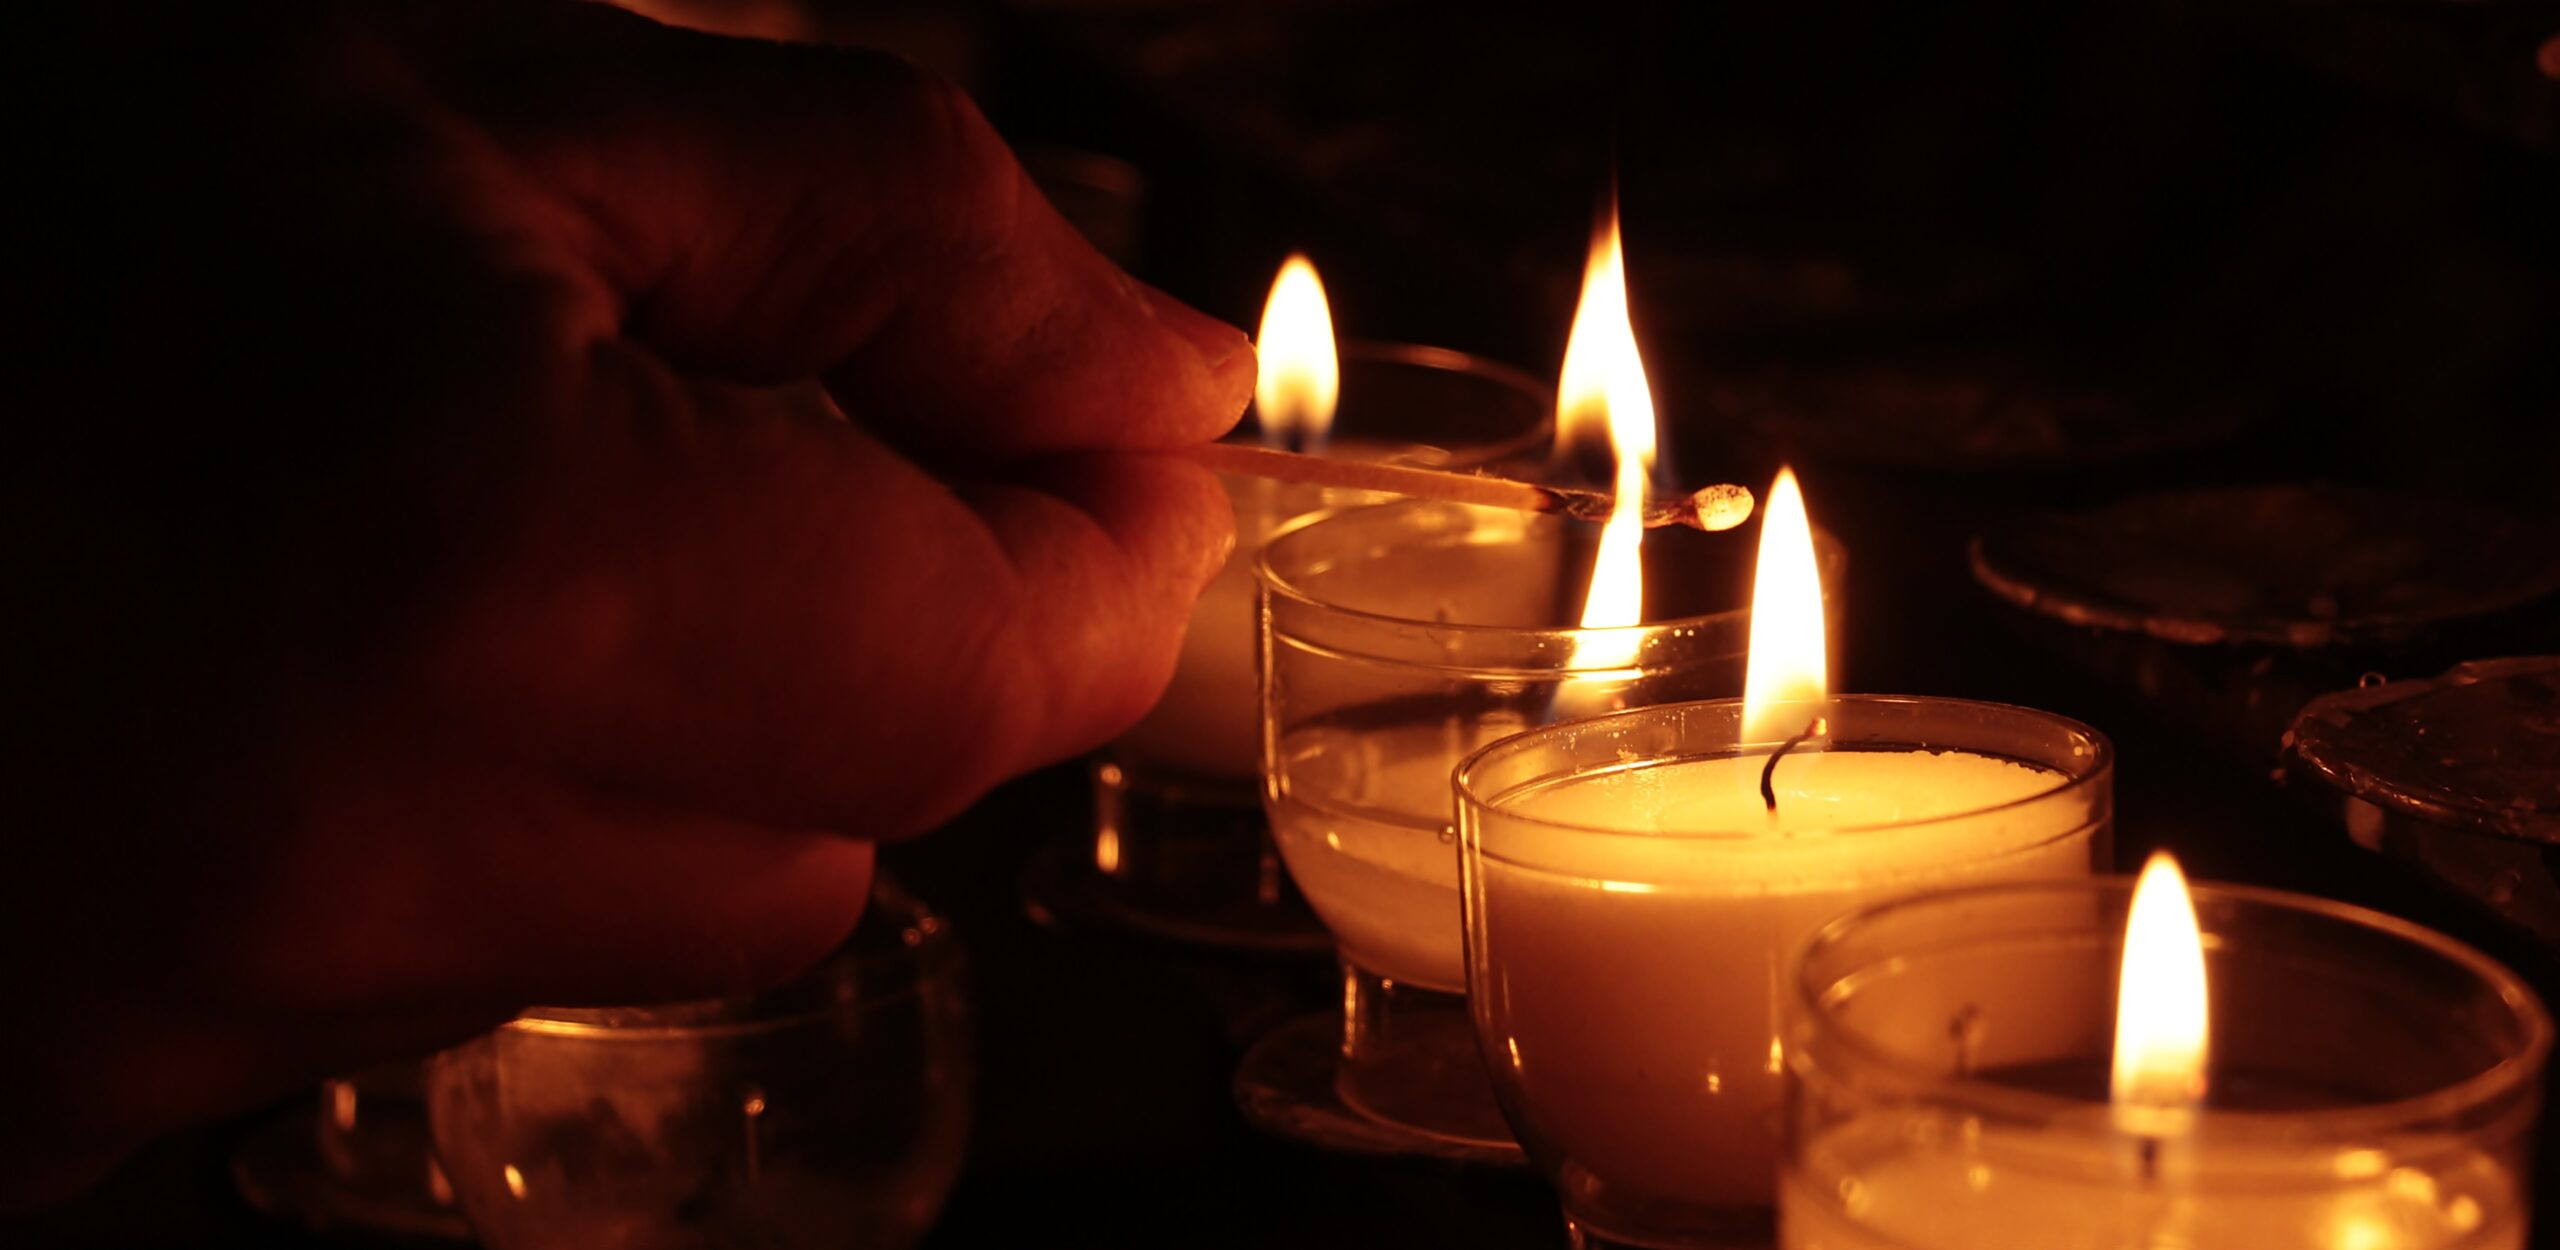 Hand holding a lit match and lighting 3 tealight candles